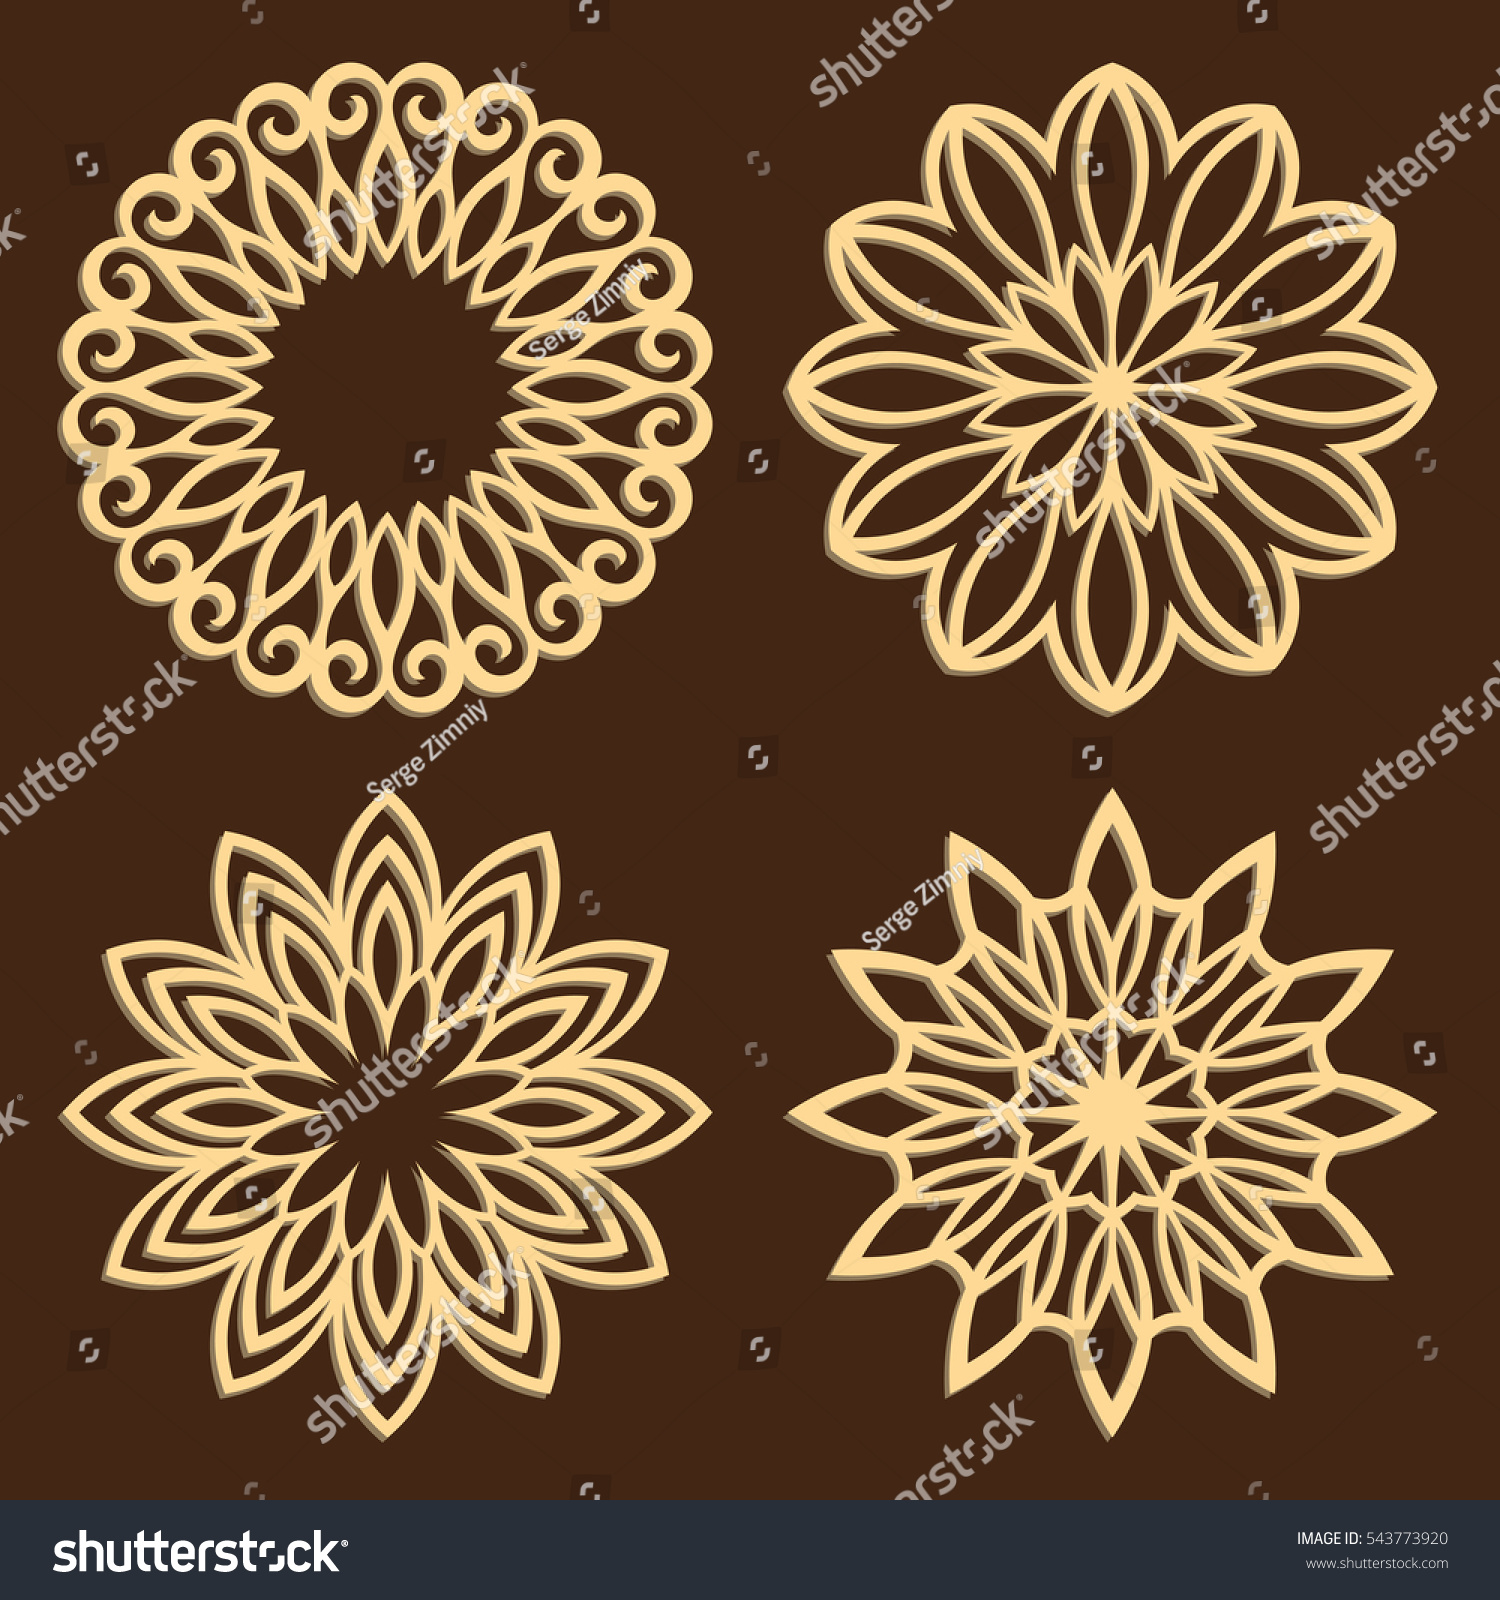 Diy Laser Cutting Patterns Jigsaw Die Stock Vector Royalty Free